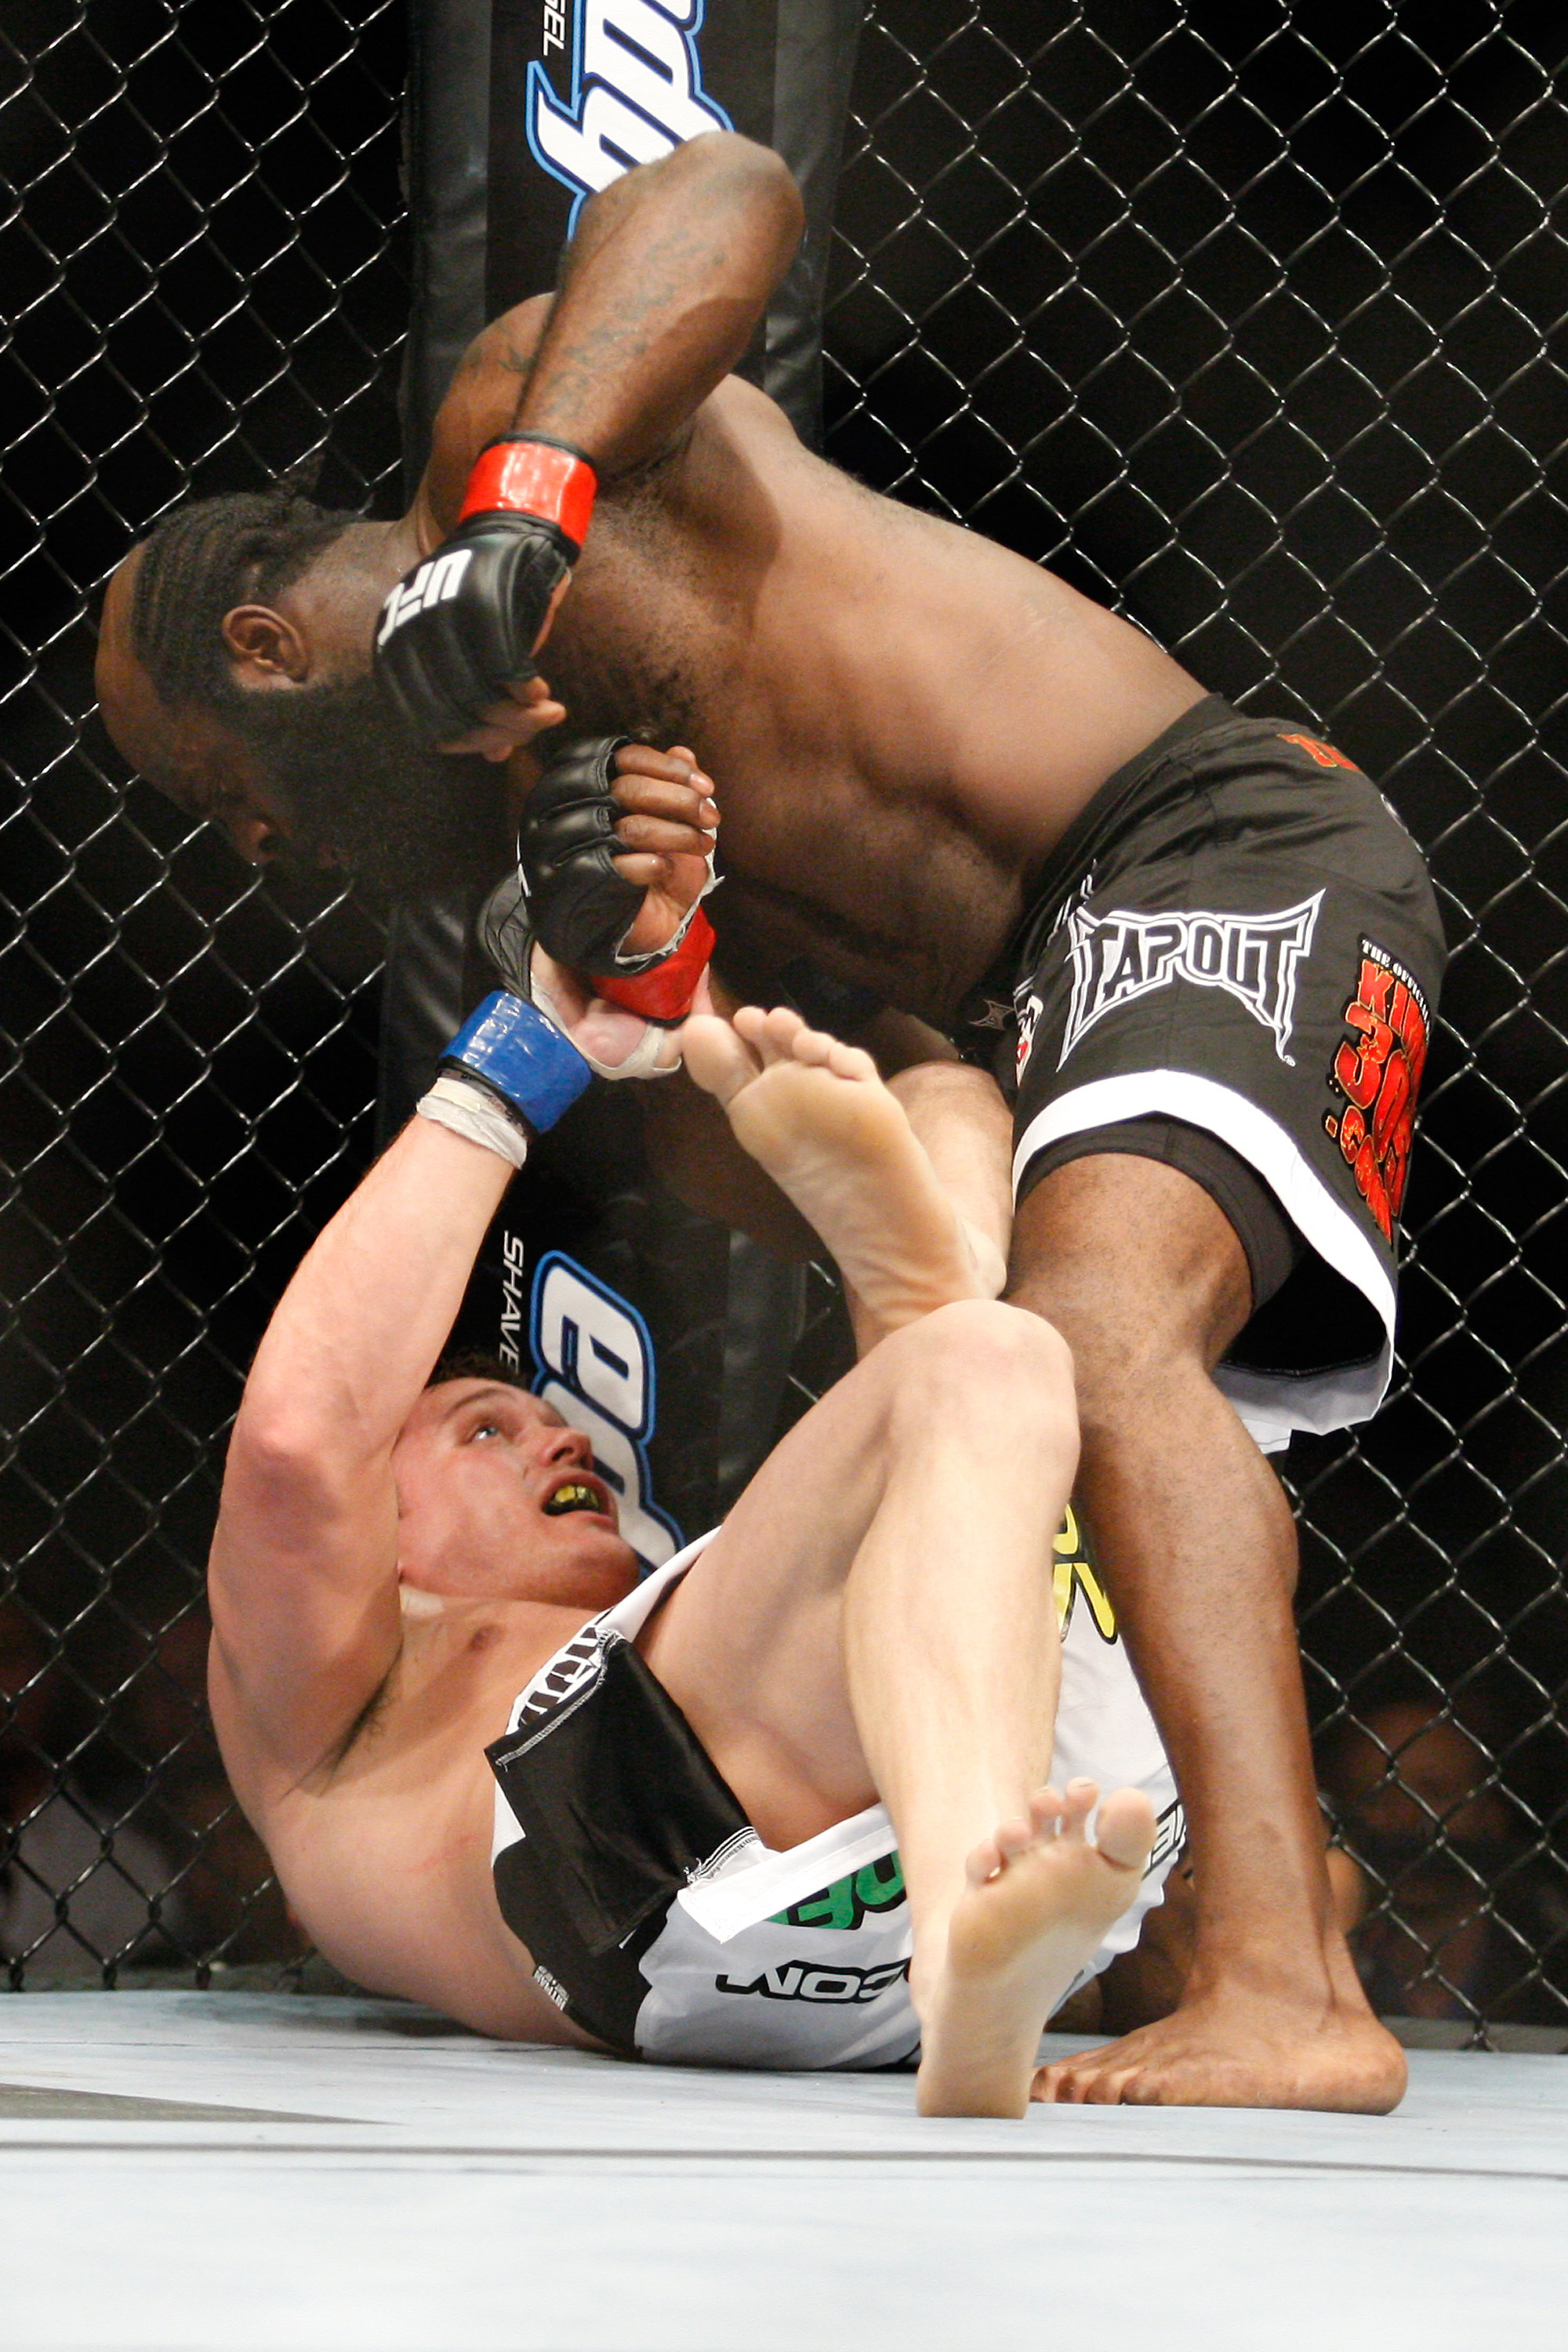 MONTREAL- MAY 8: Kimbo Slice (top) punches Matt Mitrione in their heavyweight bout at UFC 113 at Bell Centre on May 8, 2010 in Montreal, Quebec, Canada.  (Photo by Richard Wolowicz/Getty Images)